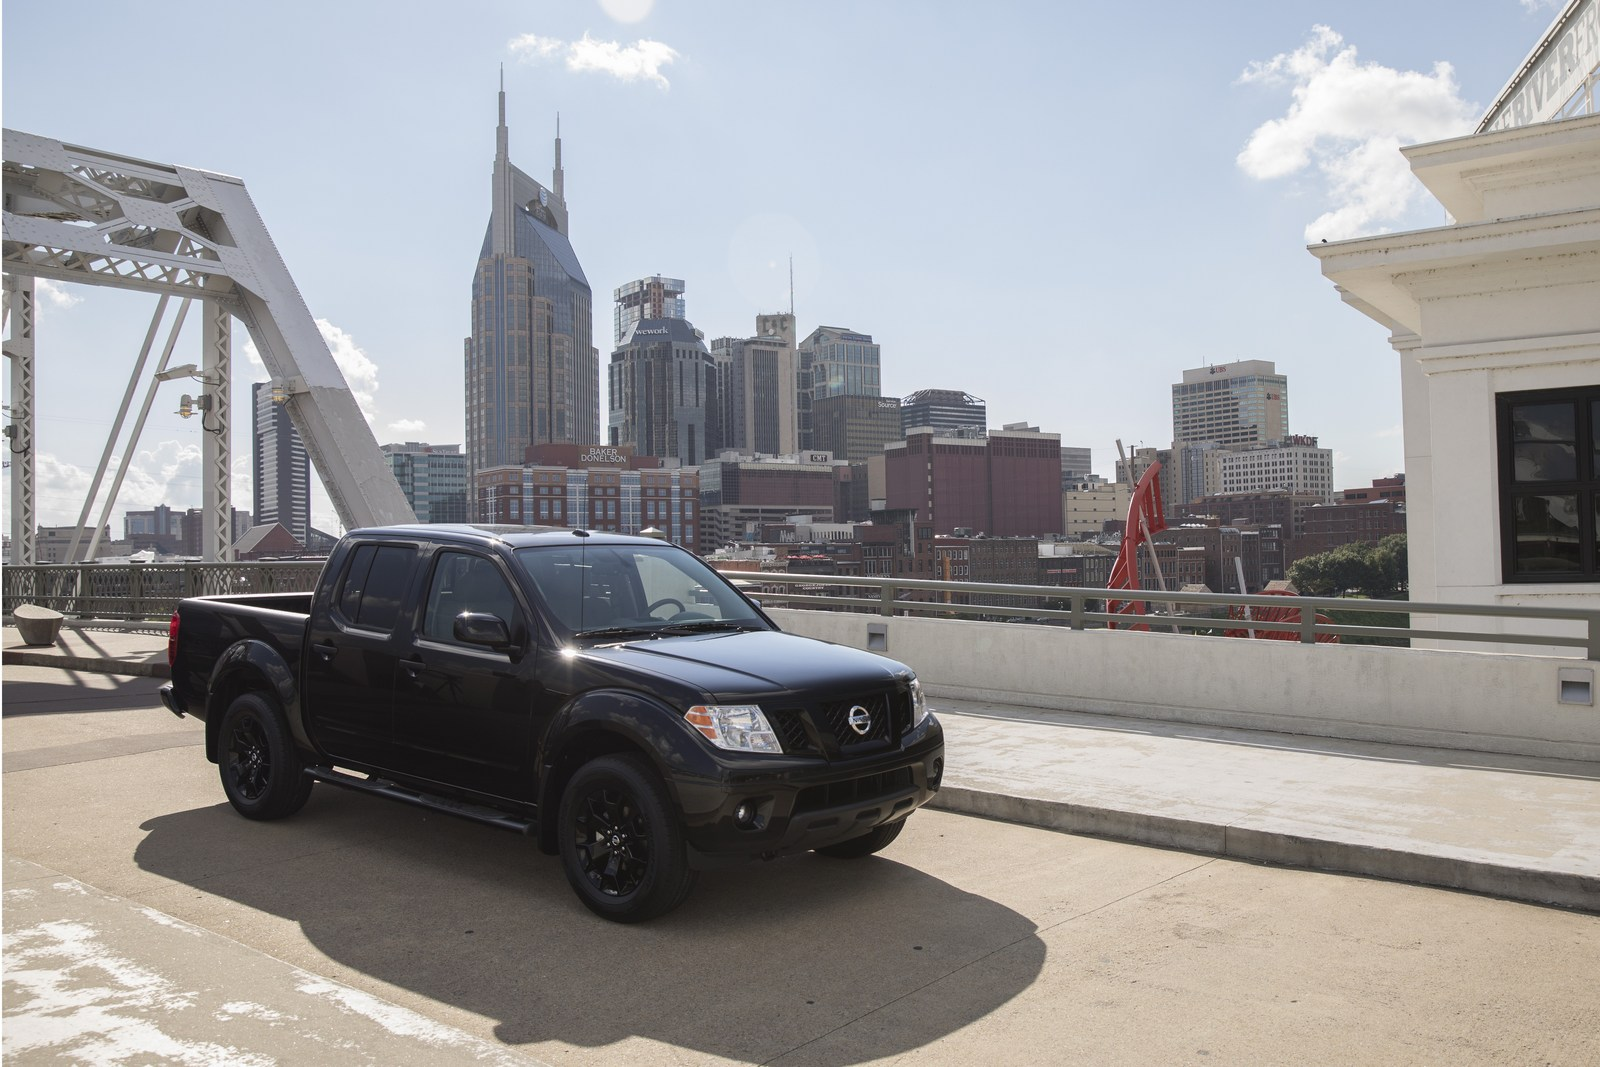 As the solar eclipse darkened the midday sky over Nissan's U.S. headquarters in Franklin, Tenn., the company rolled out three new additions to its popular and hot selling portfolio of custom Midnight Edition models: TITAN, TITAN XD and Frontier Midnight Editions. Nissan's Midnight Editions sell on average two times faster than standard models.